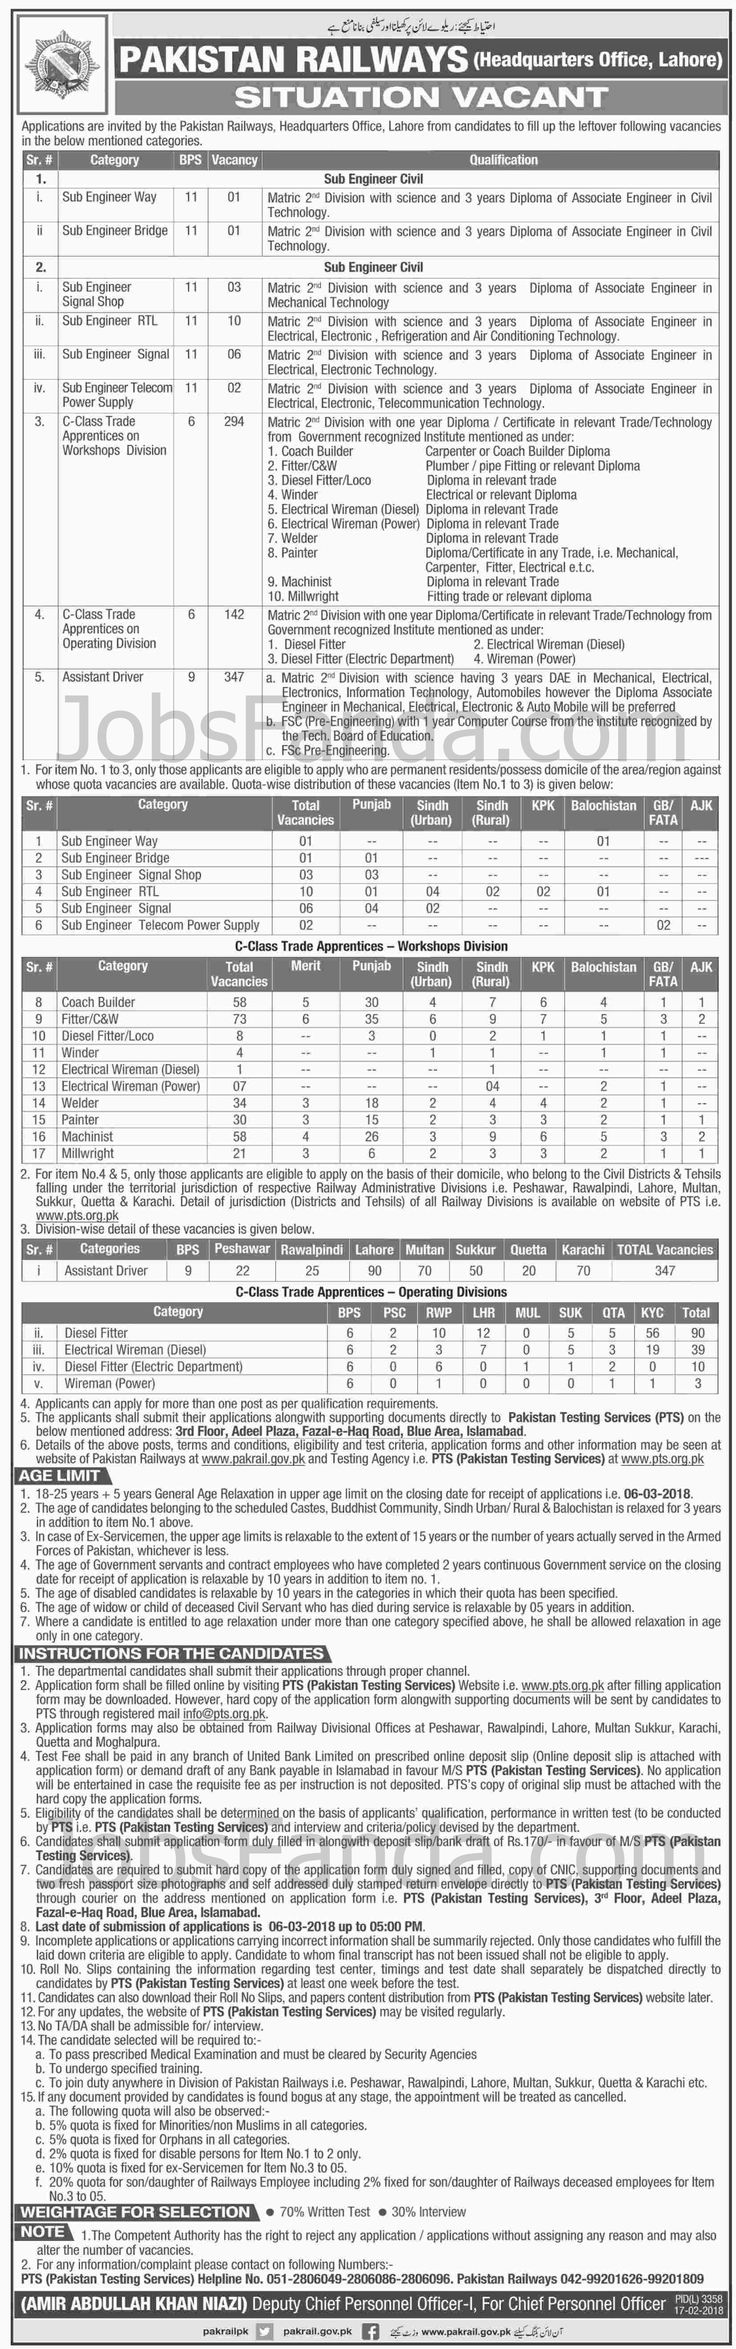 Pakistan Railways PTS Jobs 2018 For Drivers And Engineers https://www.jobsfanda.com/pakistan-railways-pts-jobs-2018-for-drivers-and-engineers/